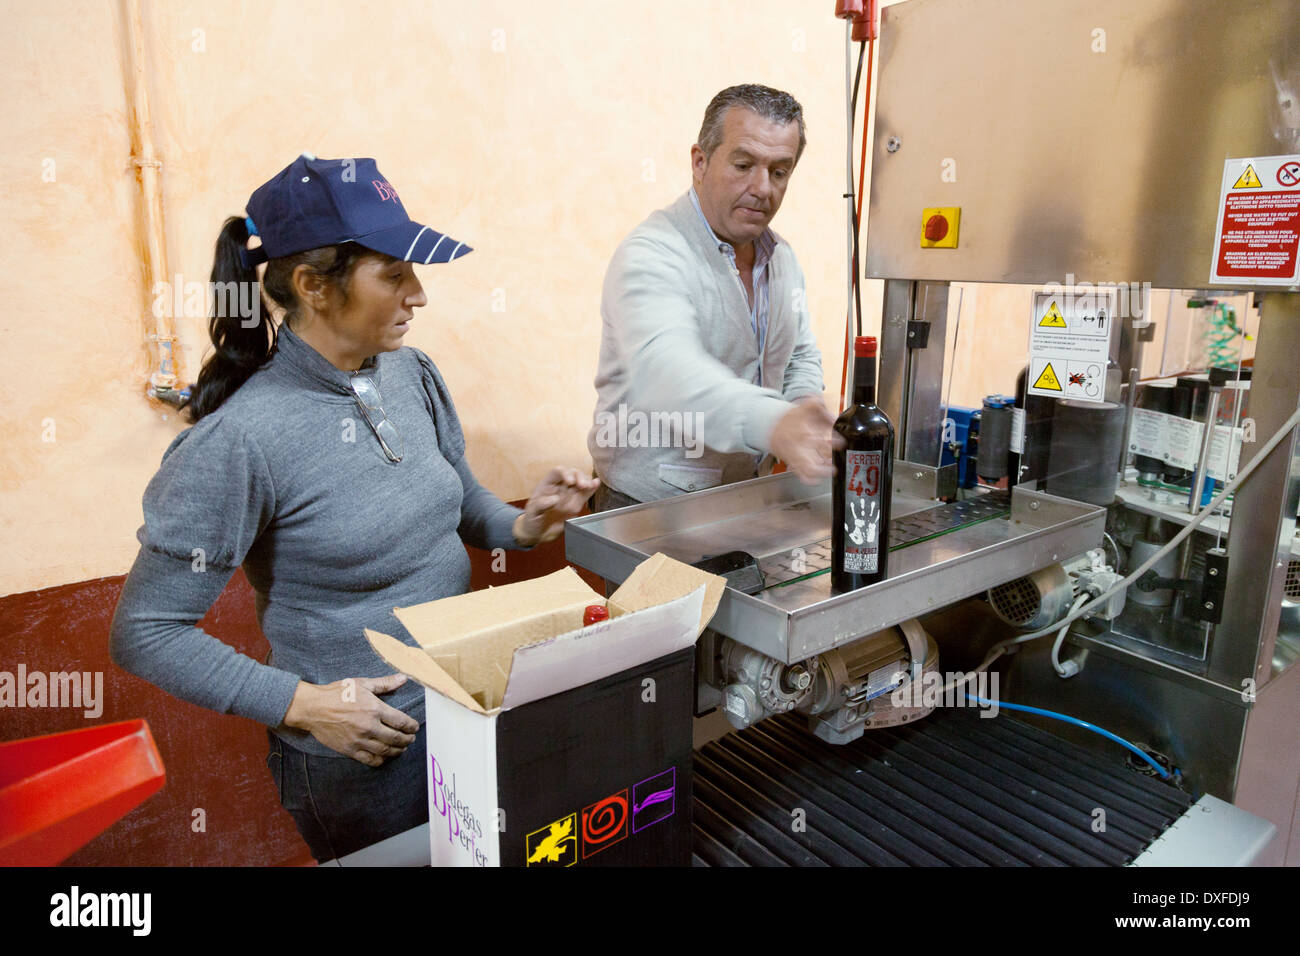 Spanish wine production line - labelling and boxing of wine bottles, Perfer Vineyard, Almeria, Andalusia, Spain Stock Photo